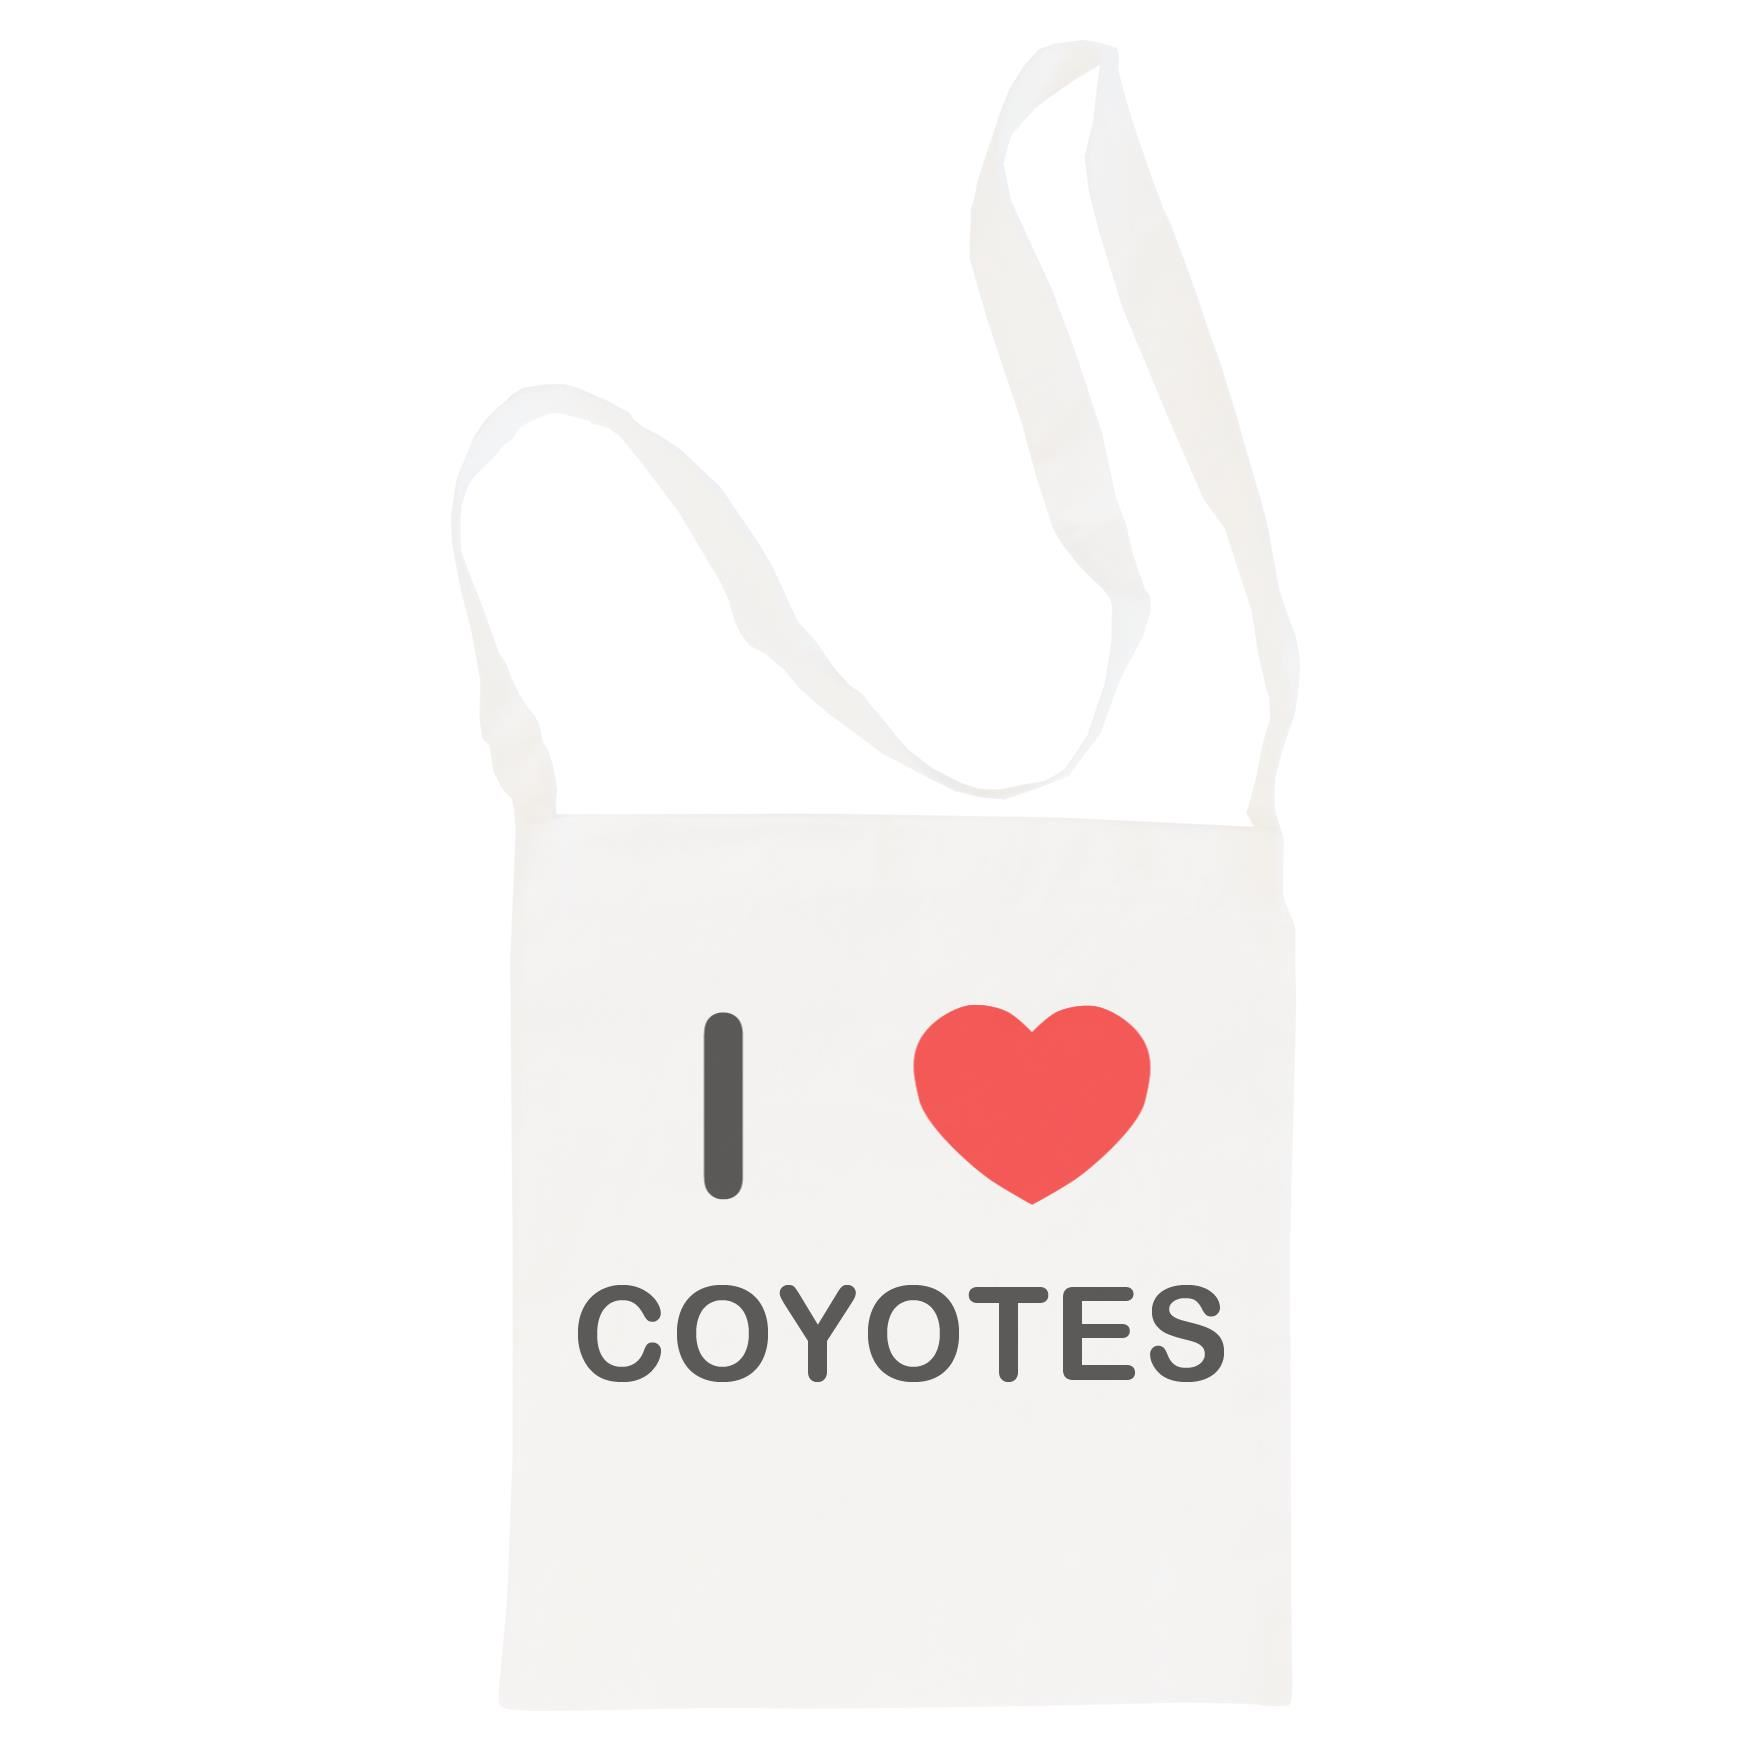 I Love Coyotes - Cotton Bag | Size choice Tote, Shopper or Sling